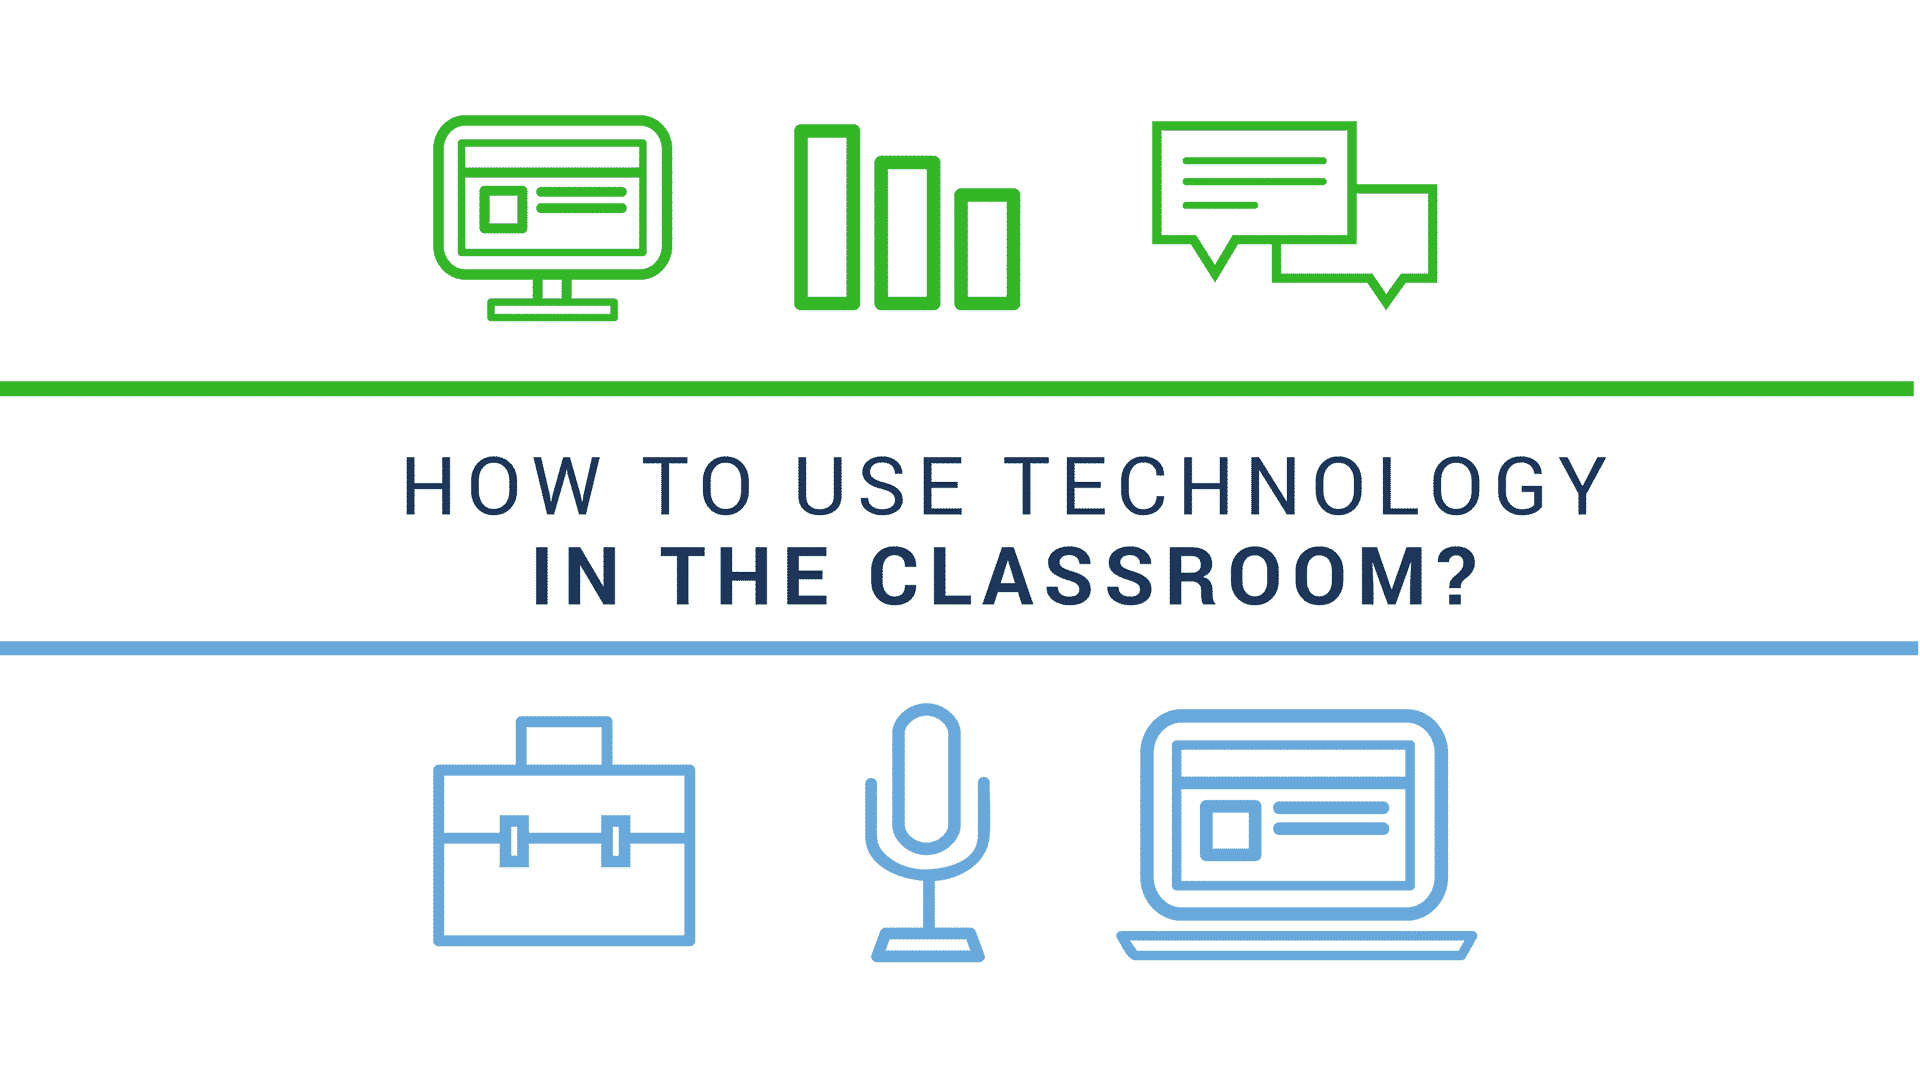 eLearning technology platforms virtual classroom